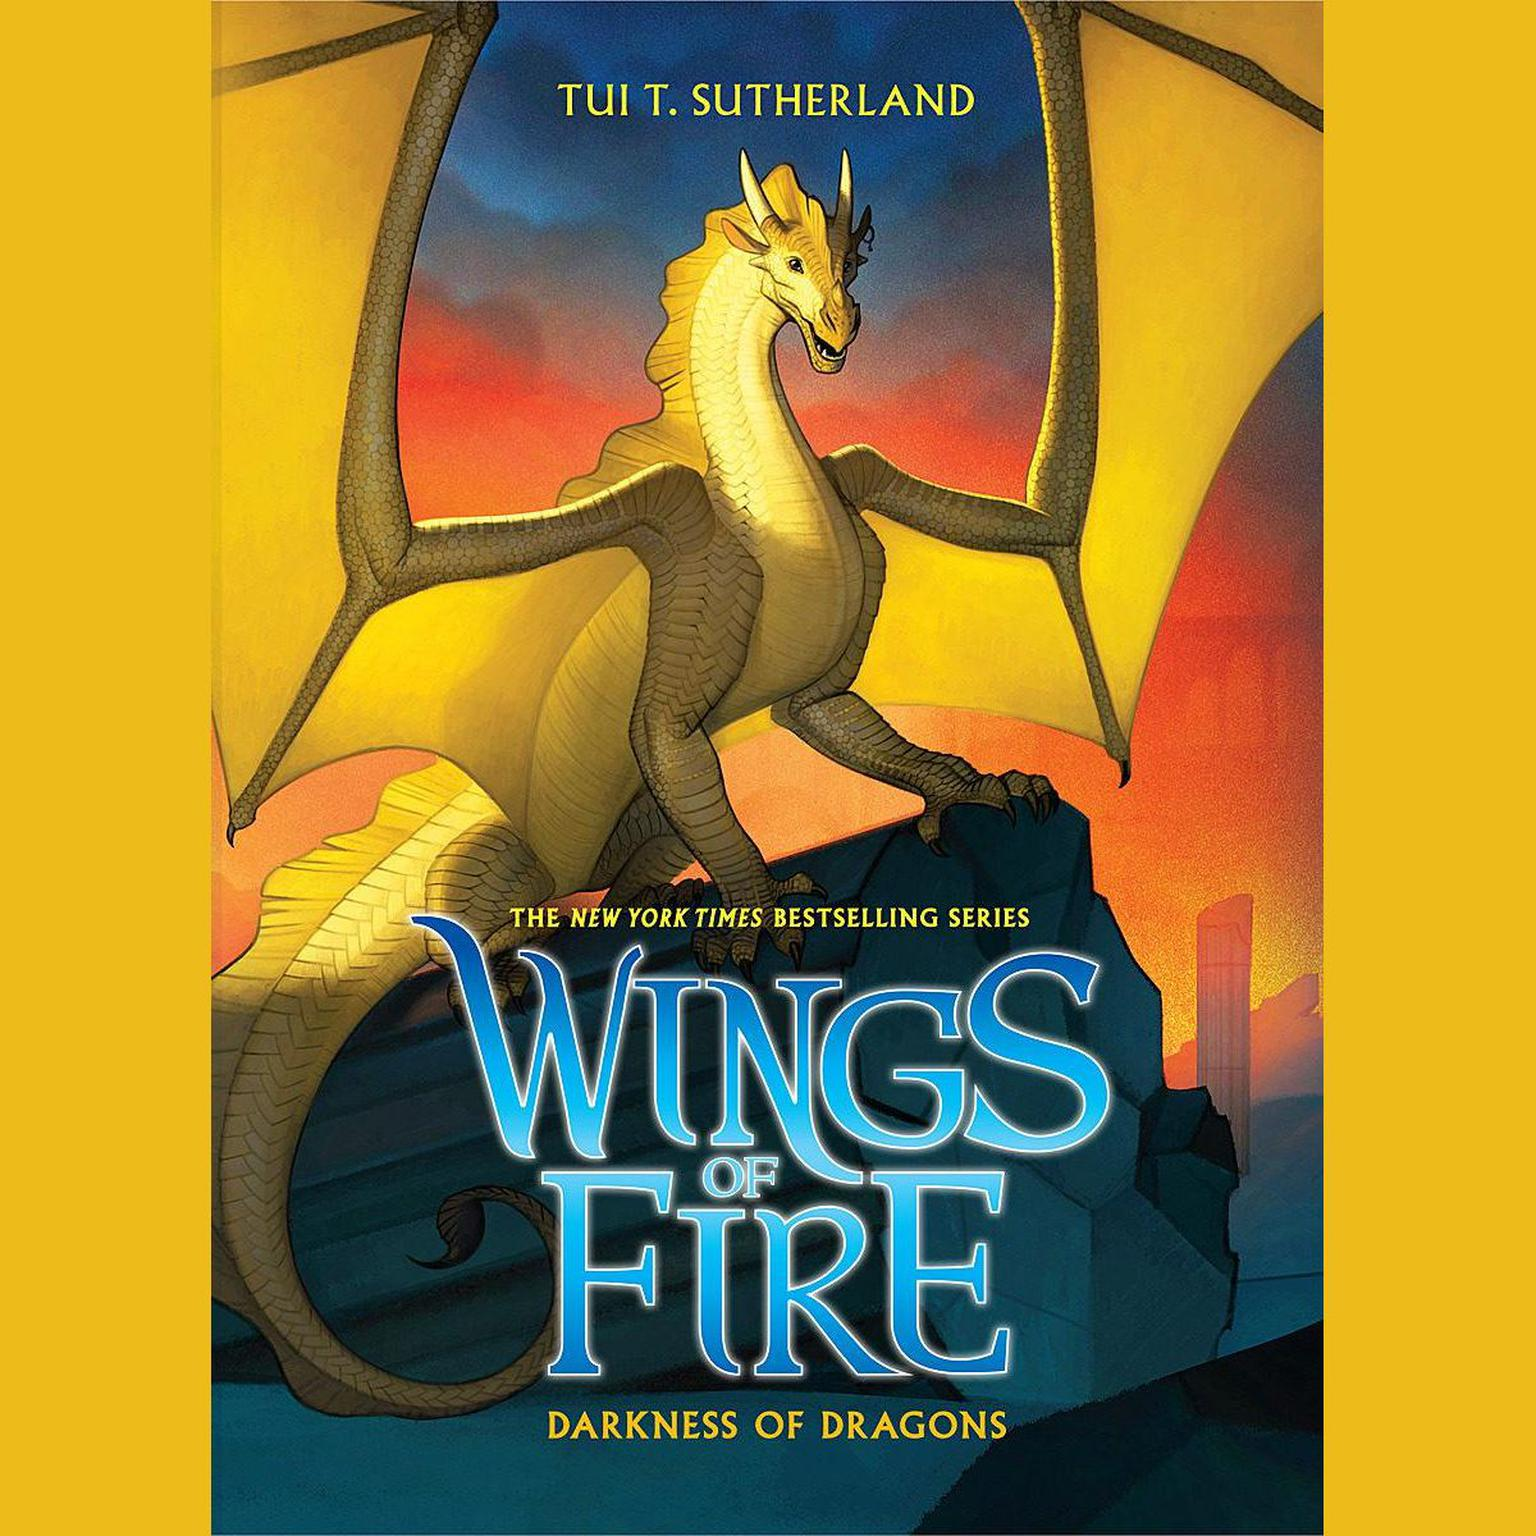 Darkness of Dragons Audiobook, by Tui T. Sutherland